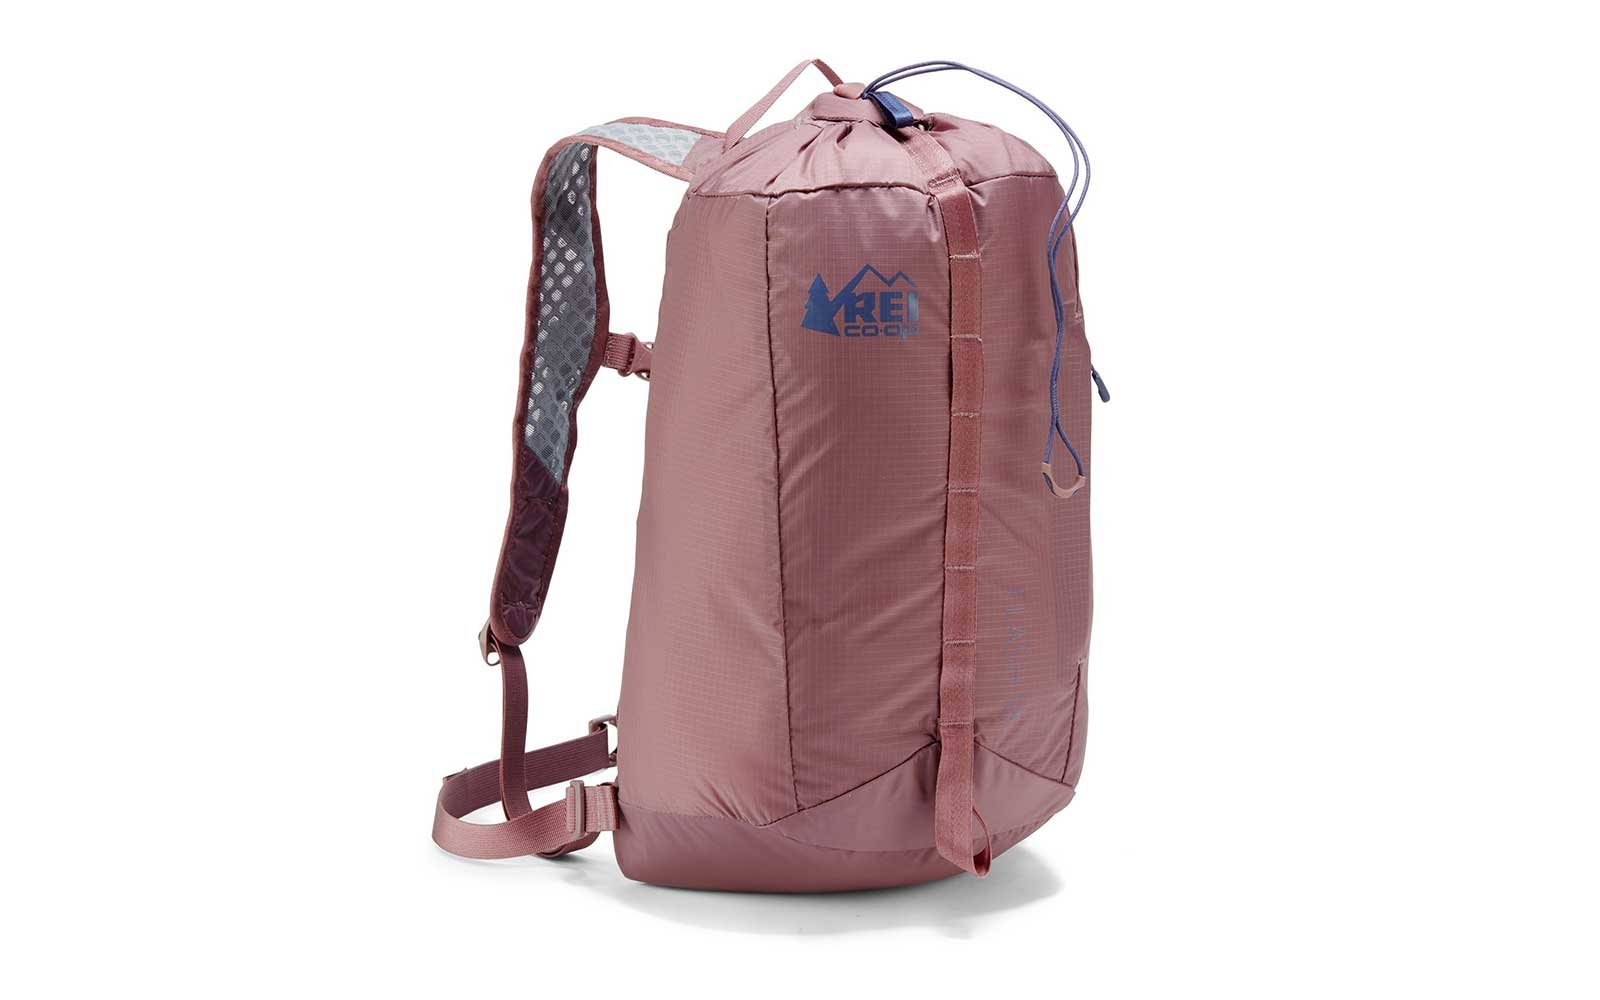 REI Flash lightweight backpack